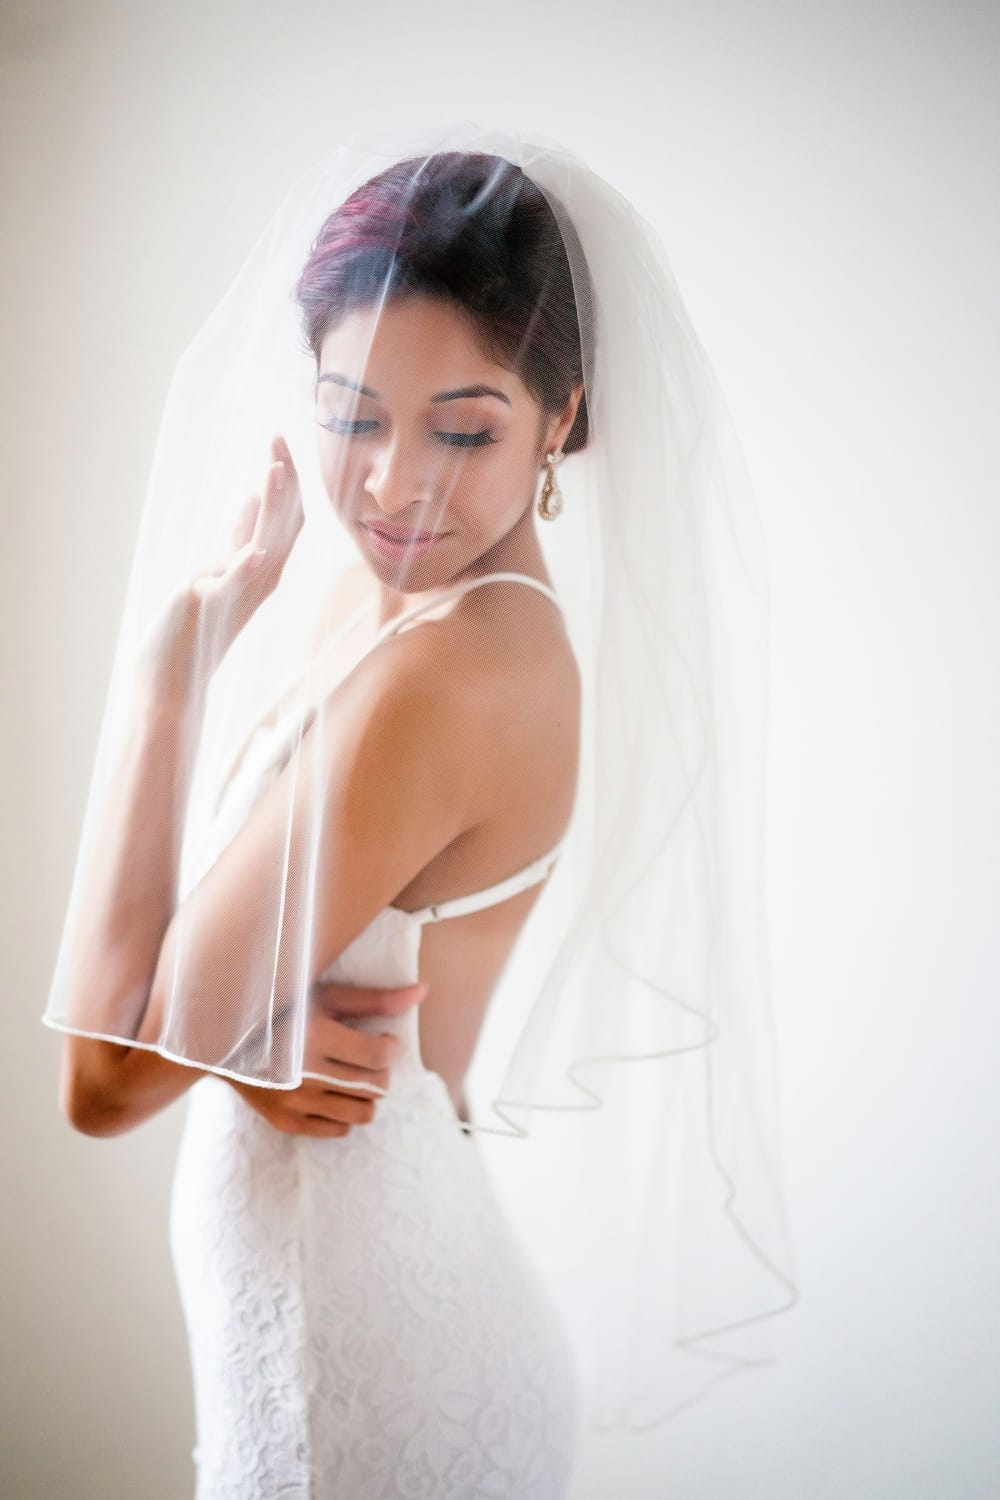 Little things borrowed - bridal accessories for rent - rent your wedding veil